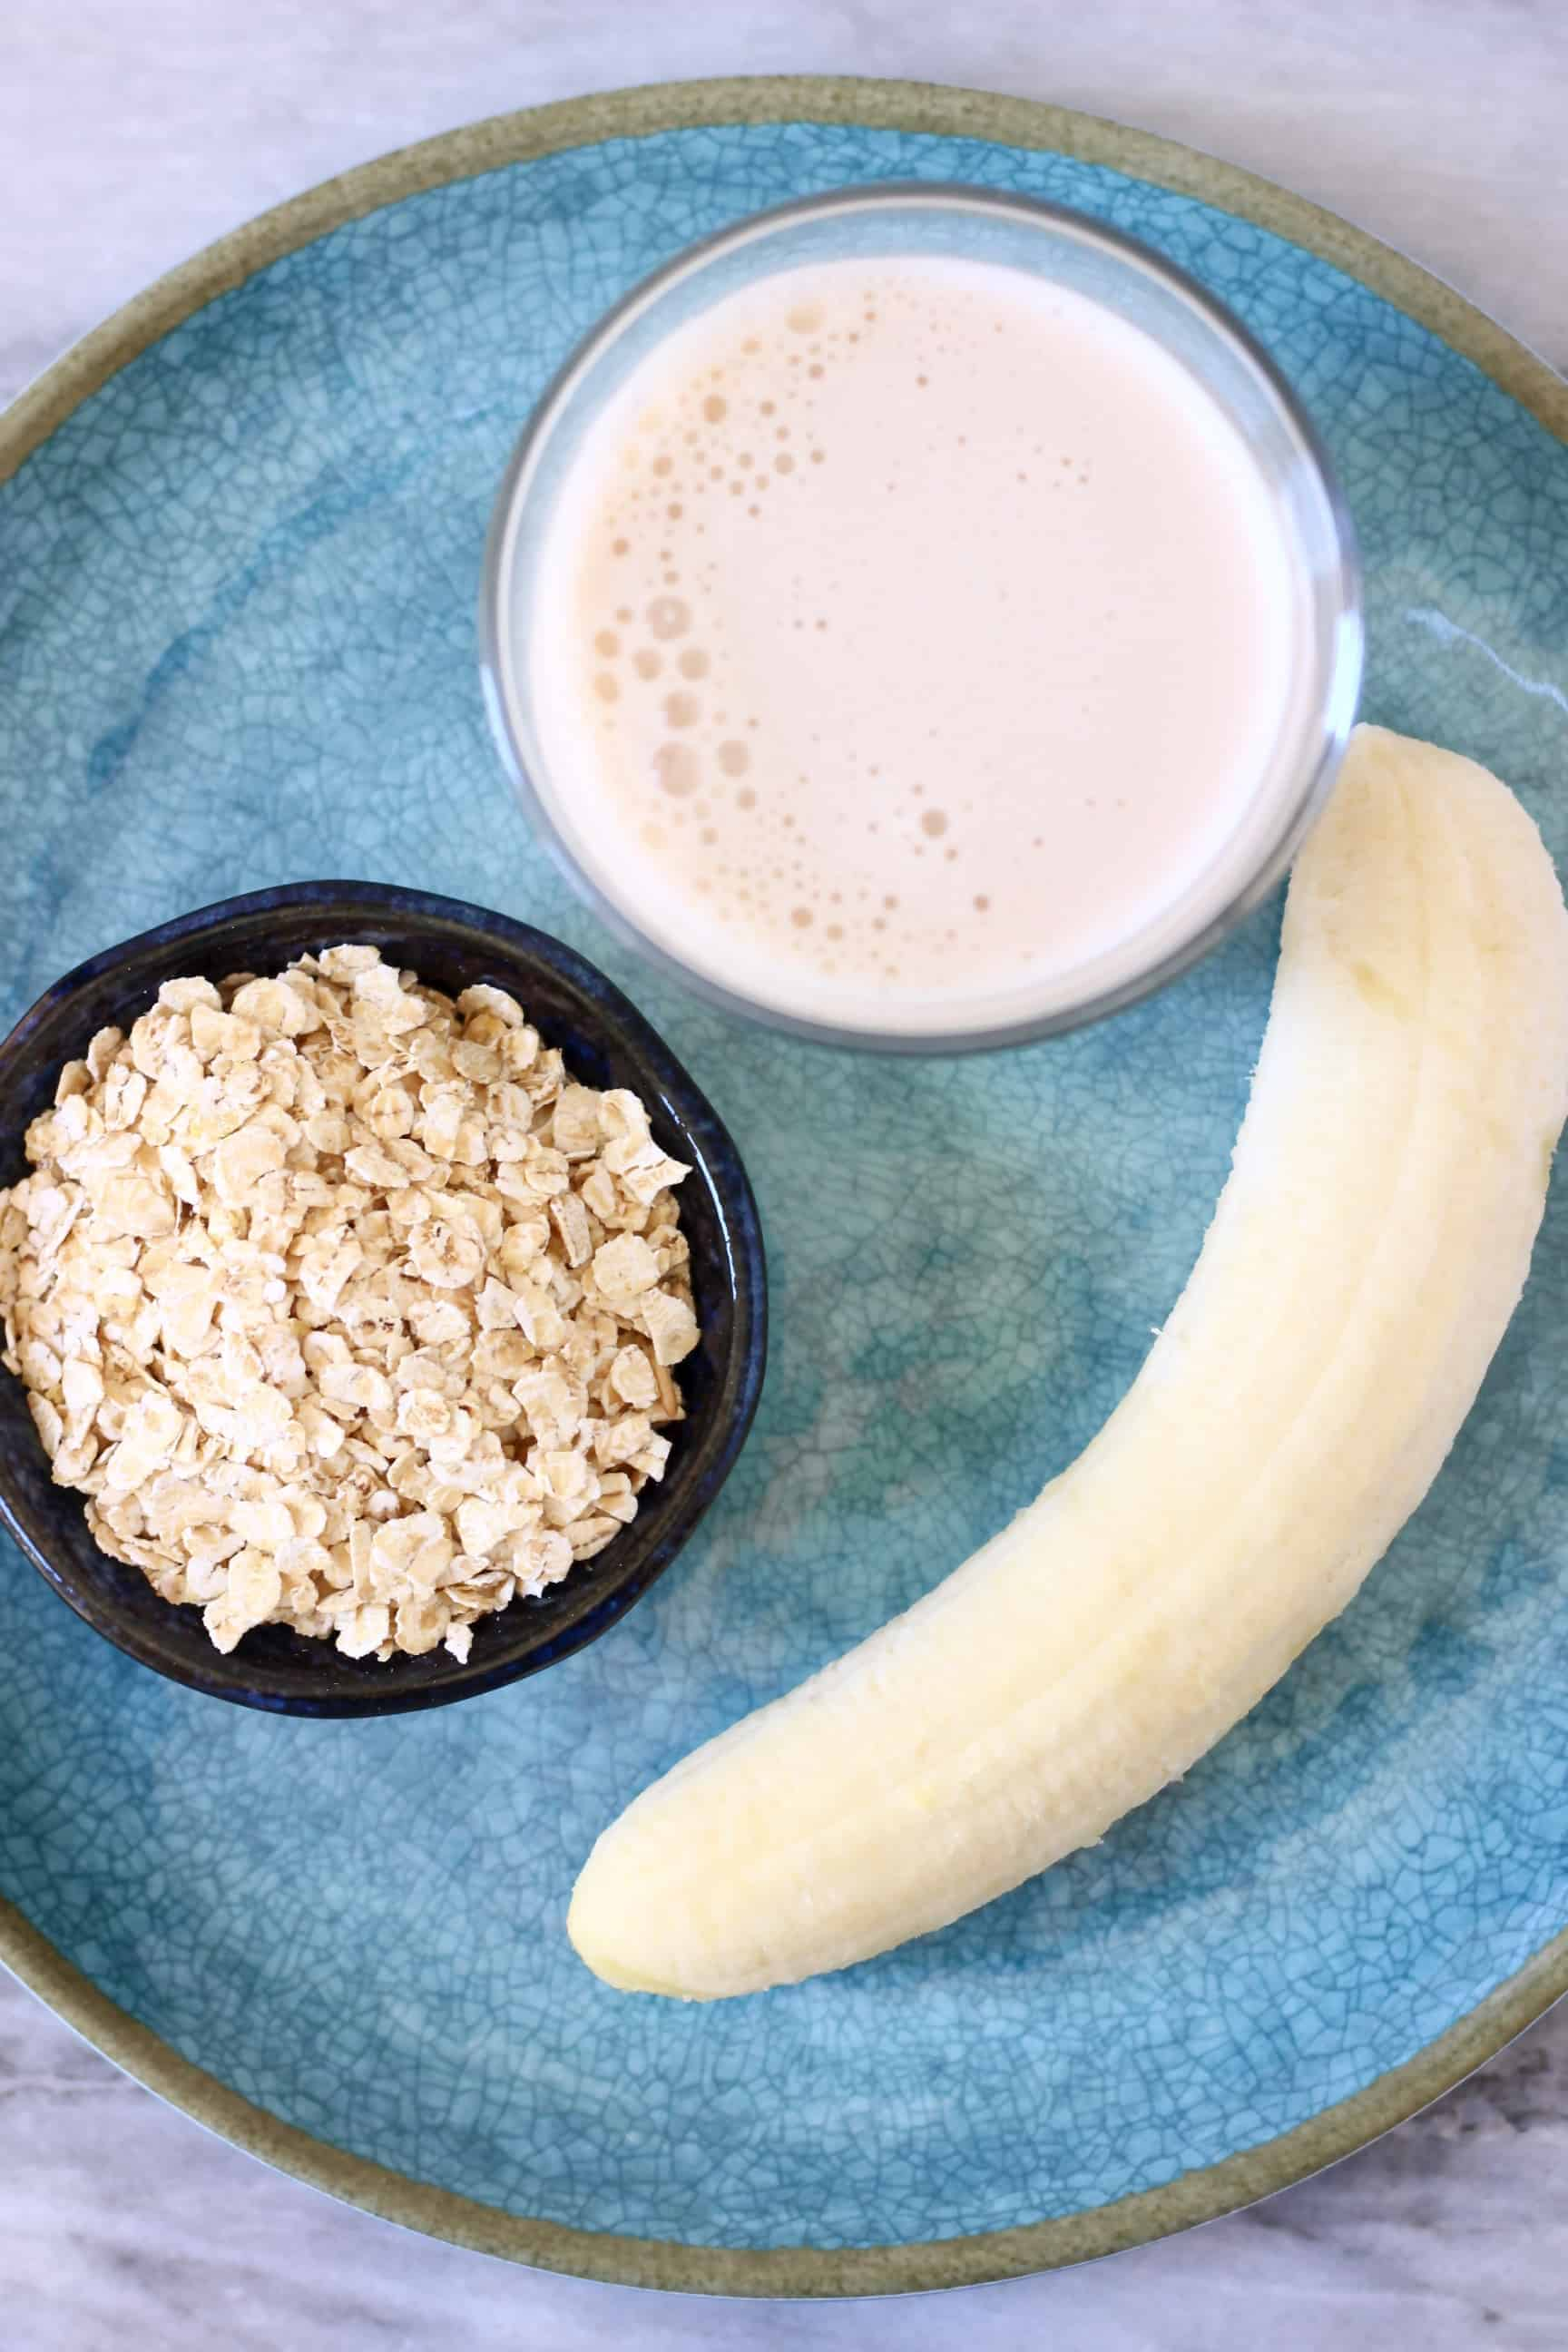 Oats, a peeled banana and a cup of almond milk on a blue plate